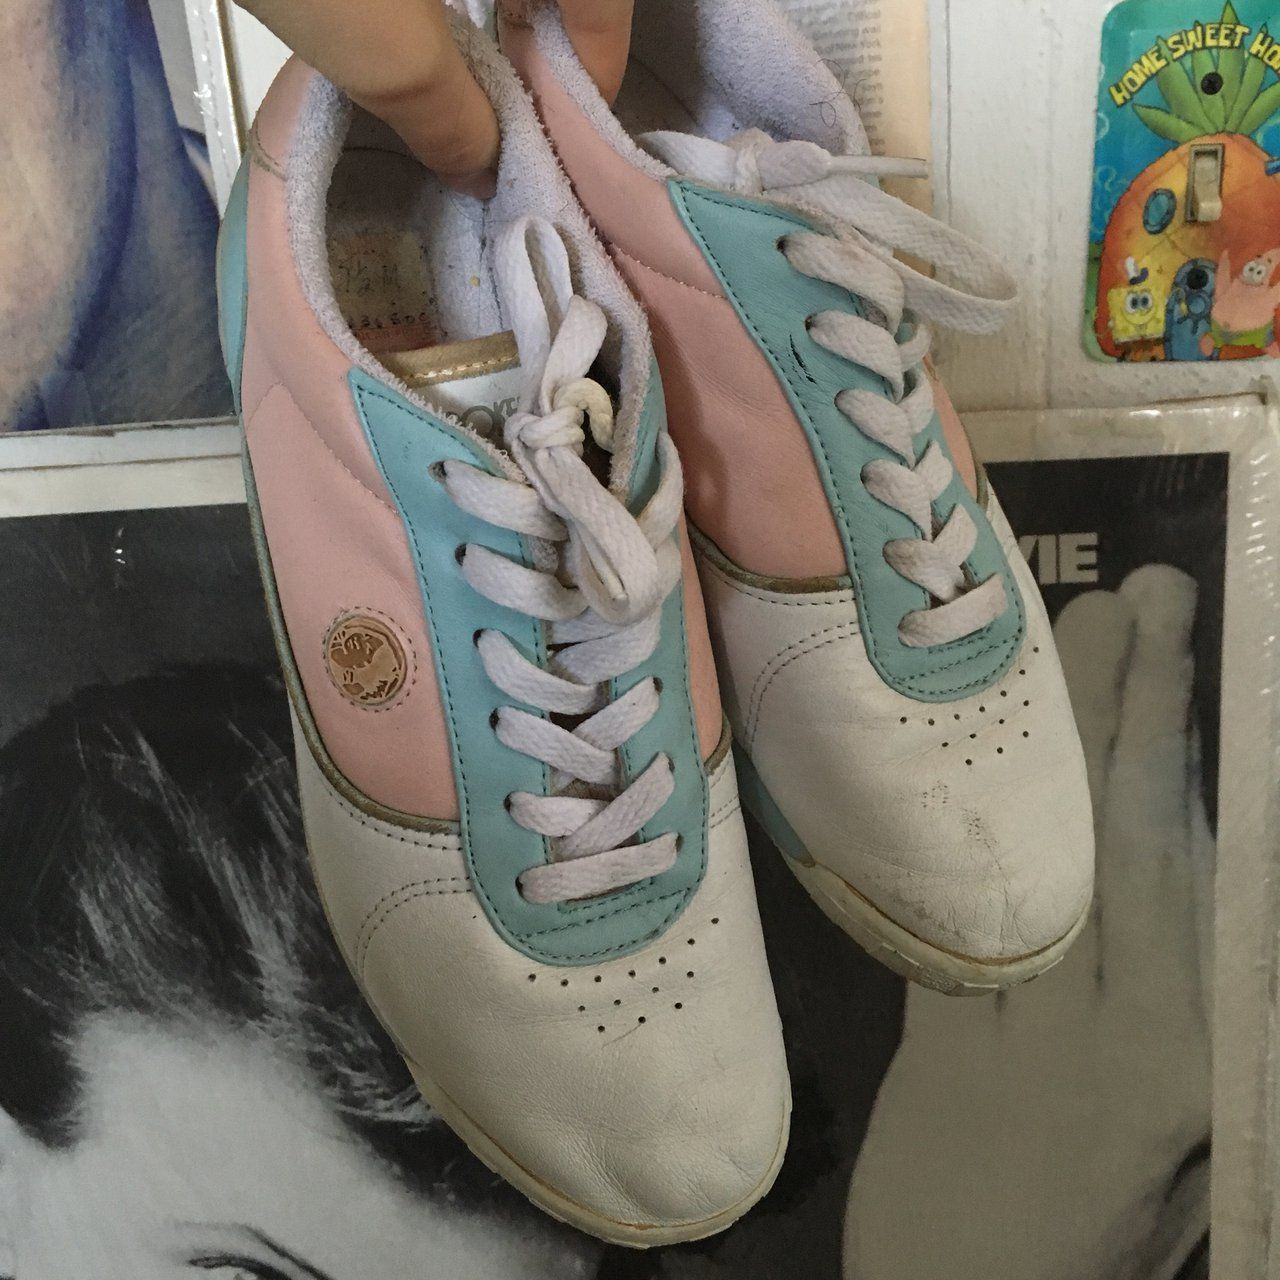 3edcaffa32c9e Vintage pastel Cherokee tennis shoes. These are so cute for an 80s pastel  look. They are 7.5 but then fit pretty snug. These shoes are super old so  they ...